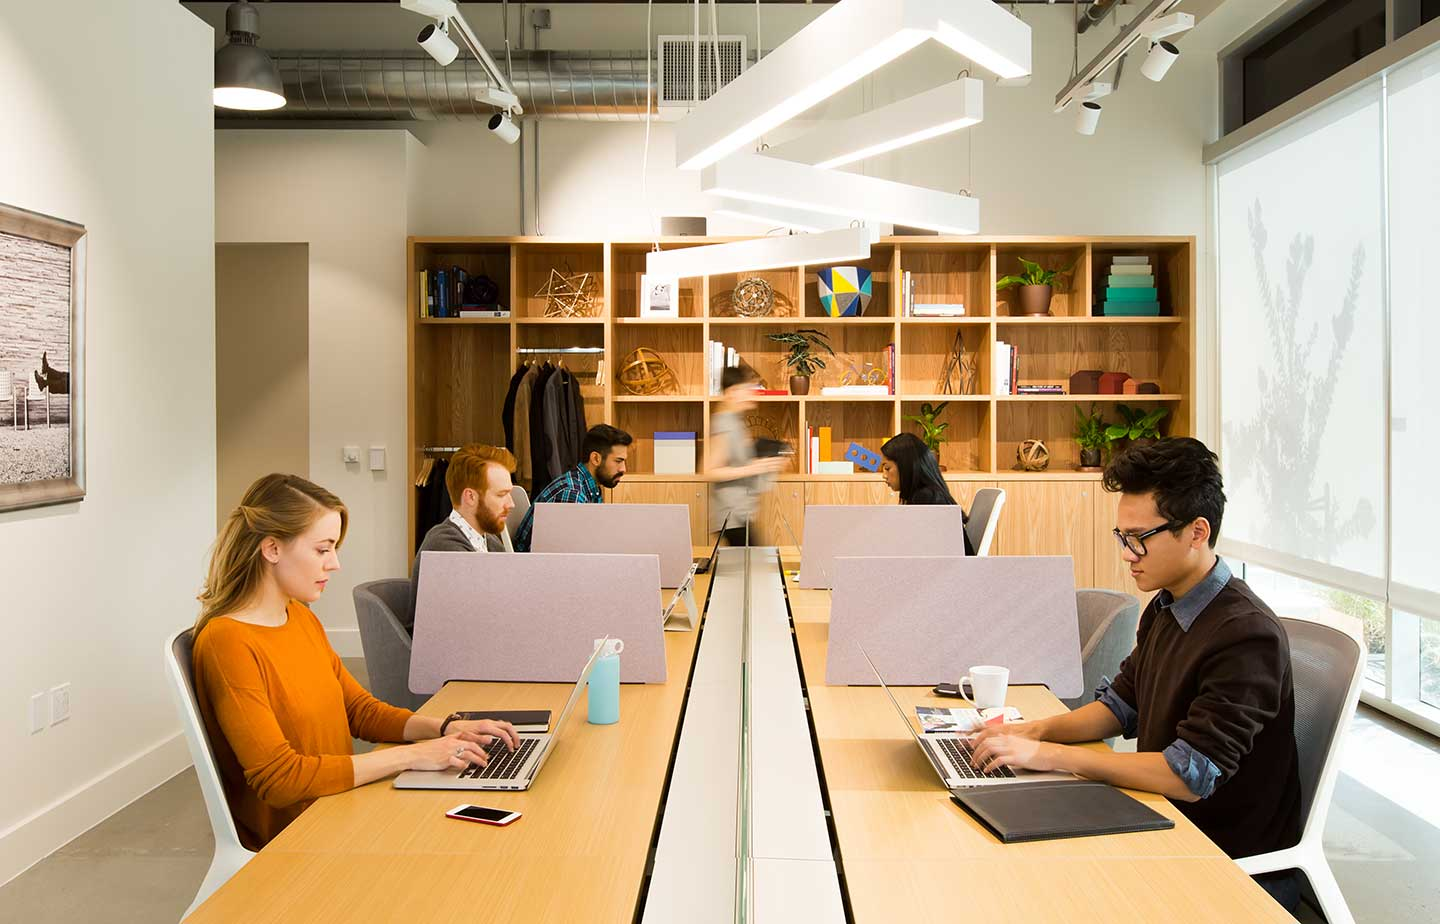 Coworking space in Silicon Valley, where Spaces members work in concentration.